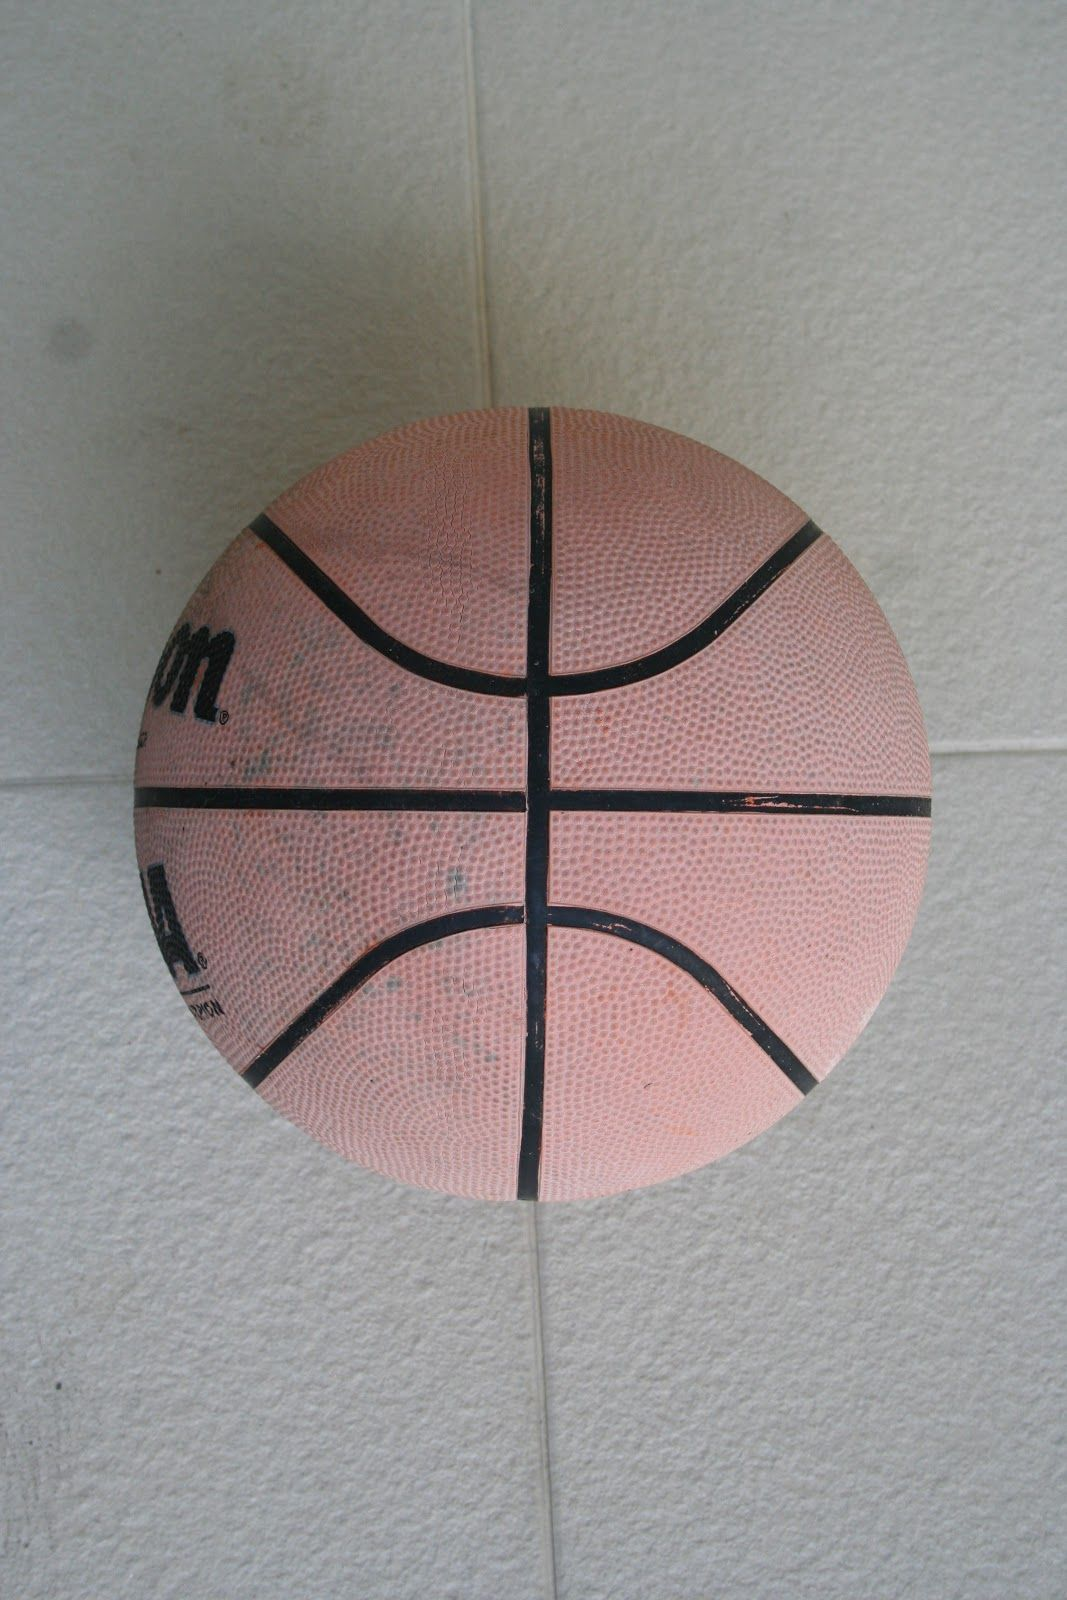 This Basketball Has A Shape Of A Coordinate Plane With 1 Positive And 1 Negative Parabola